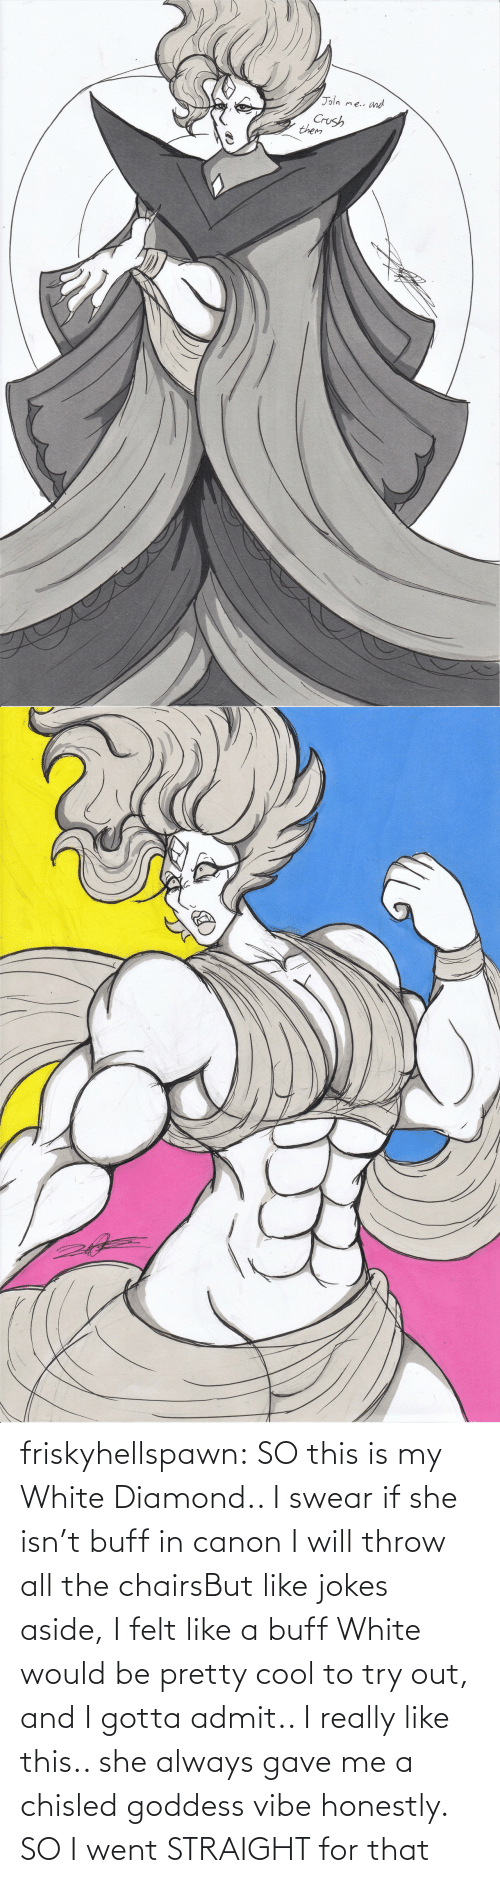 Vibe: friskyhellspawn:  SO this is my White Diamond.. I swear if she isn't buff in canon I will throw all the chairsBut like jokes aside, I felt like a buff White would be pretty cool to try out, and I gotta admit.. I really like this.. she always gave me a chisled goddess vibe honestly. SO I went STRAIGHT for that